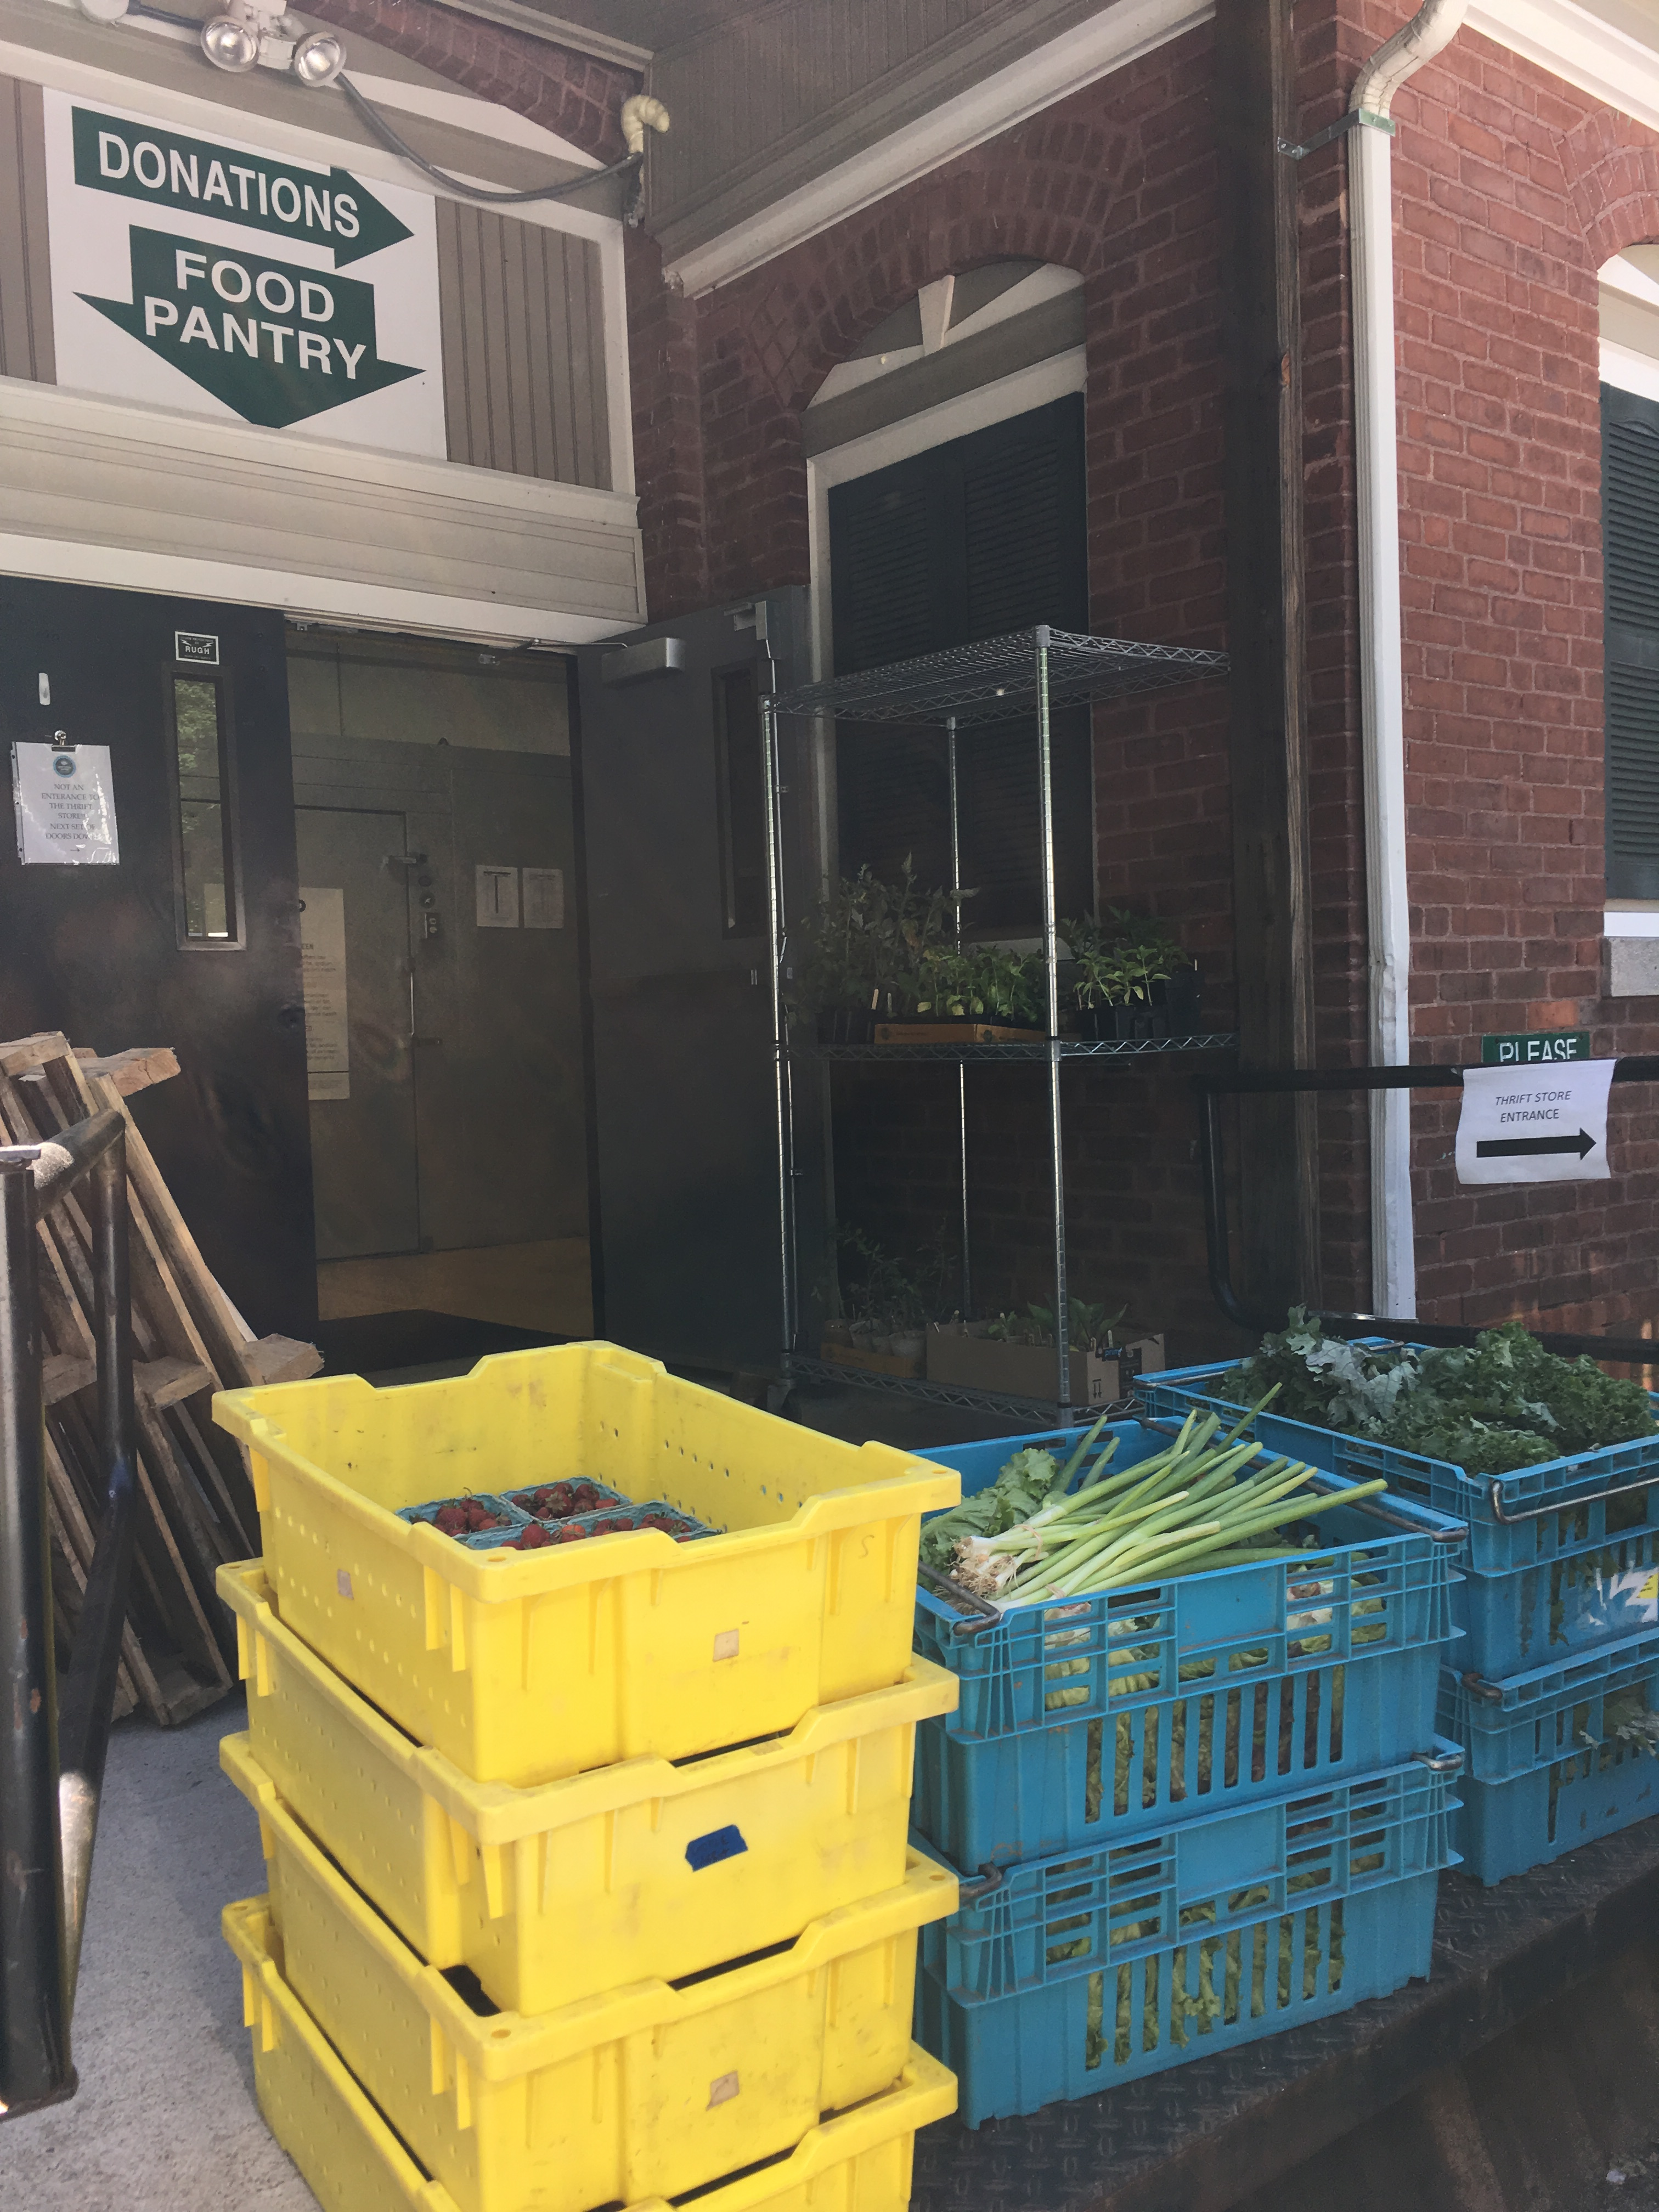 Rhode Island's Network Of Food Pantries Prepare To Meet Demand In Light Of Upcoming Changes To SNAP Program